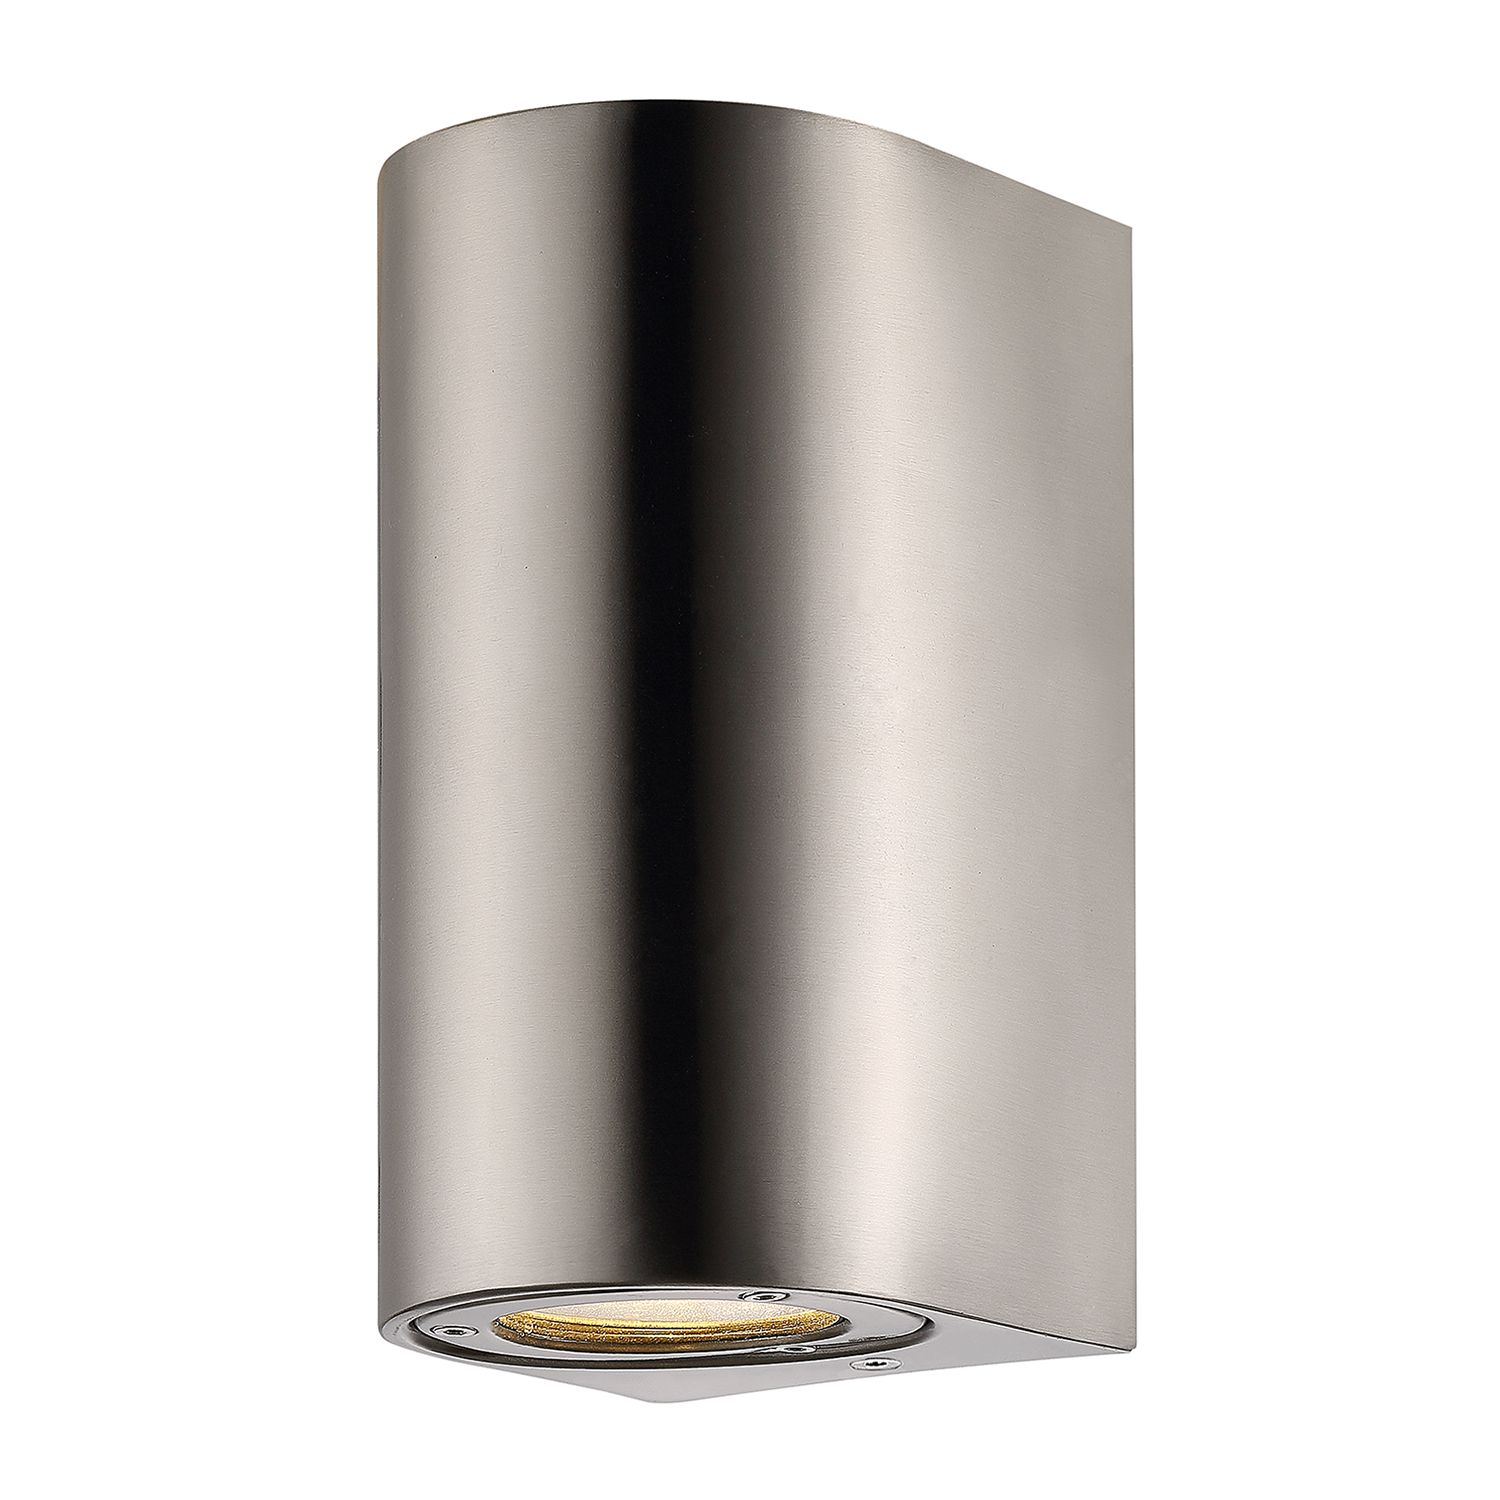 energie  A++, buitenlamp Cantos I - glas/roestvrij staal - 2 lichtbronnen - Taupe, Nordlux